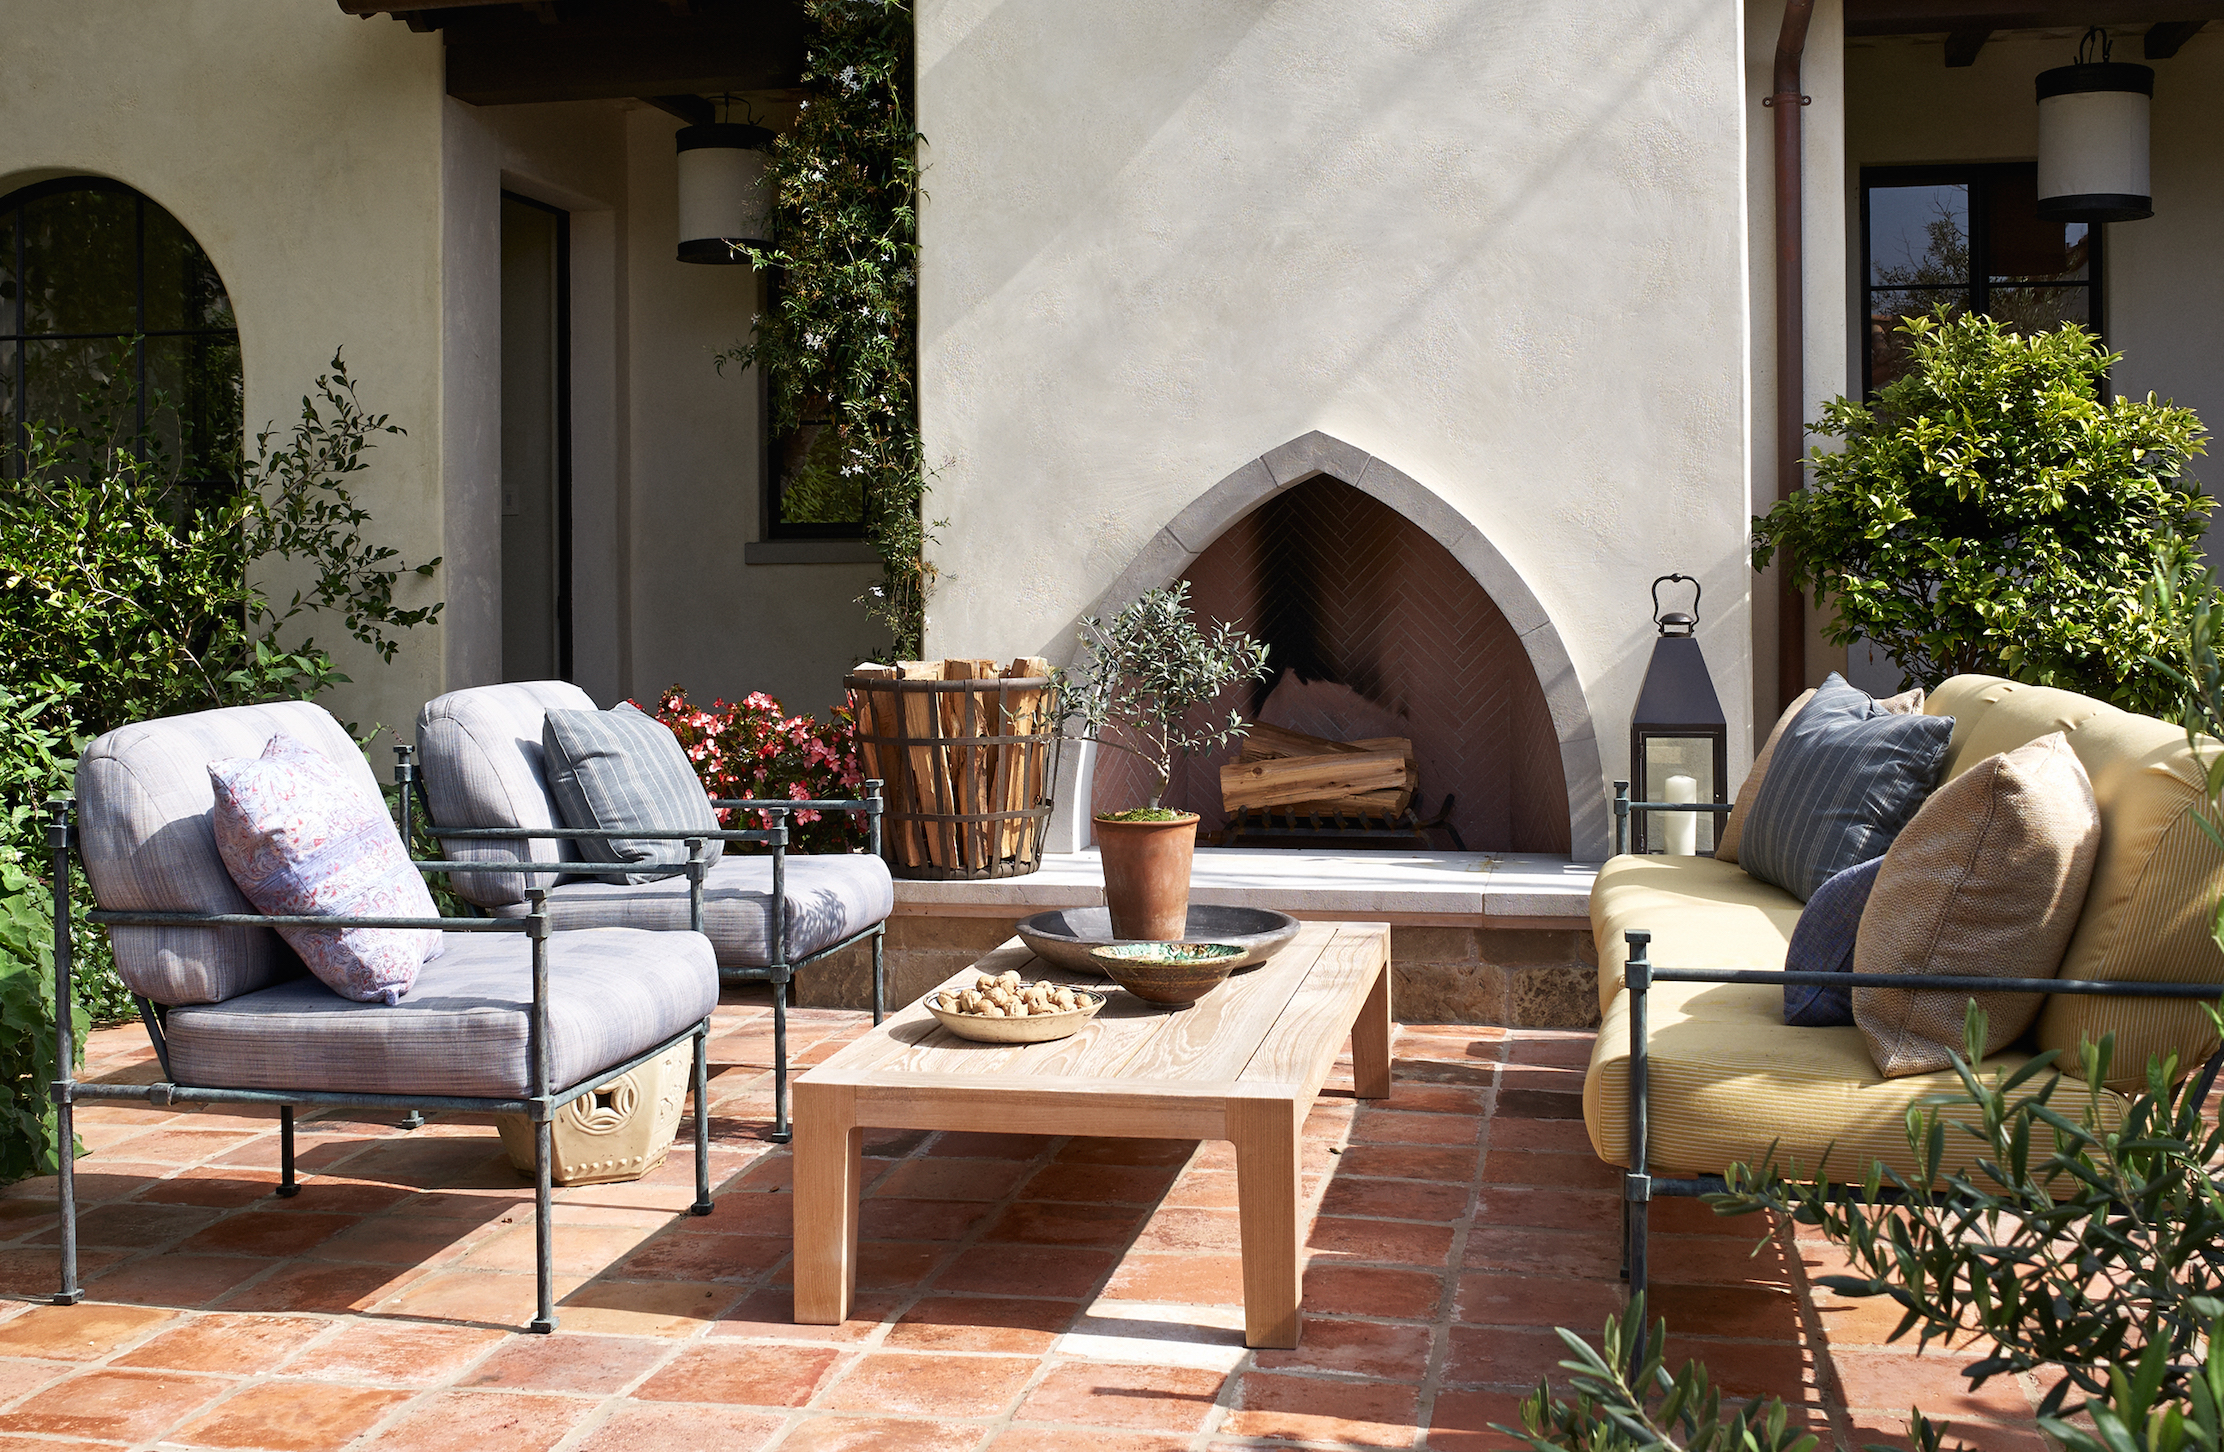 10 Outdoor Fireplace Design Ideas - Best Backyard Fire Pits on Fireplace In The Backyard id=17935